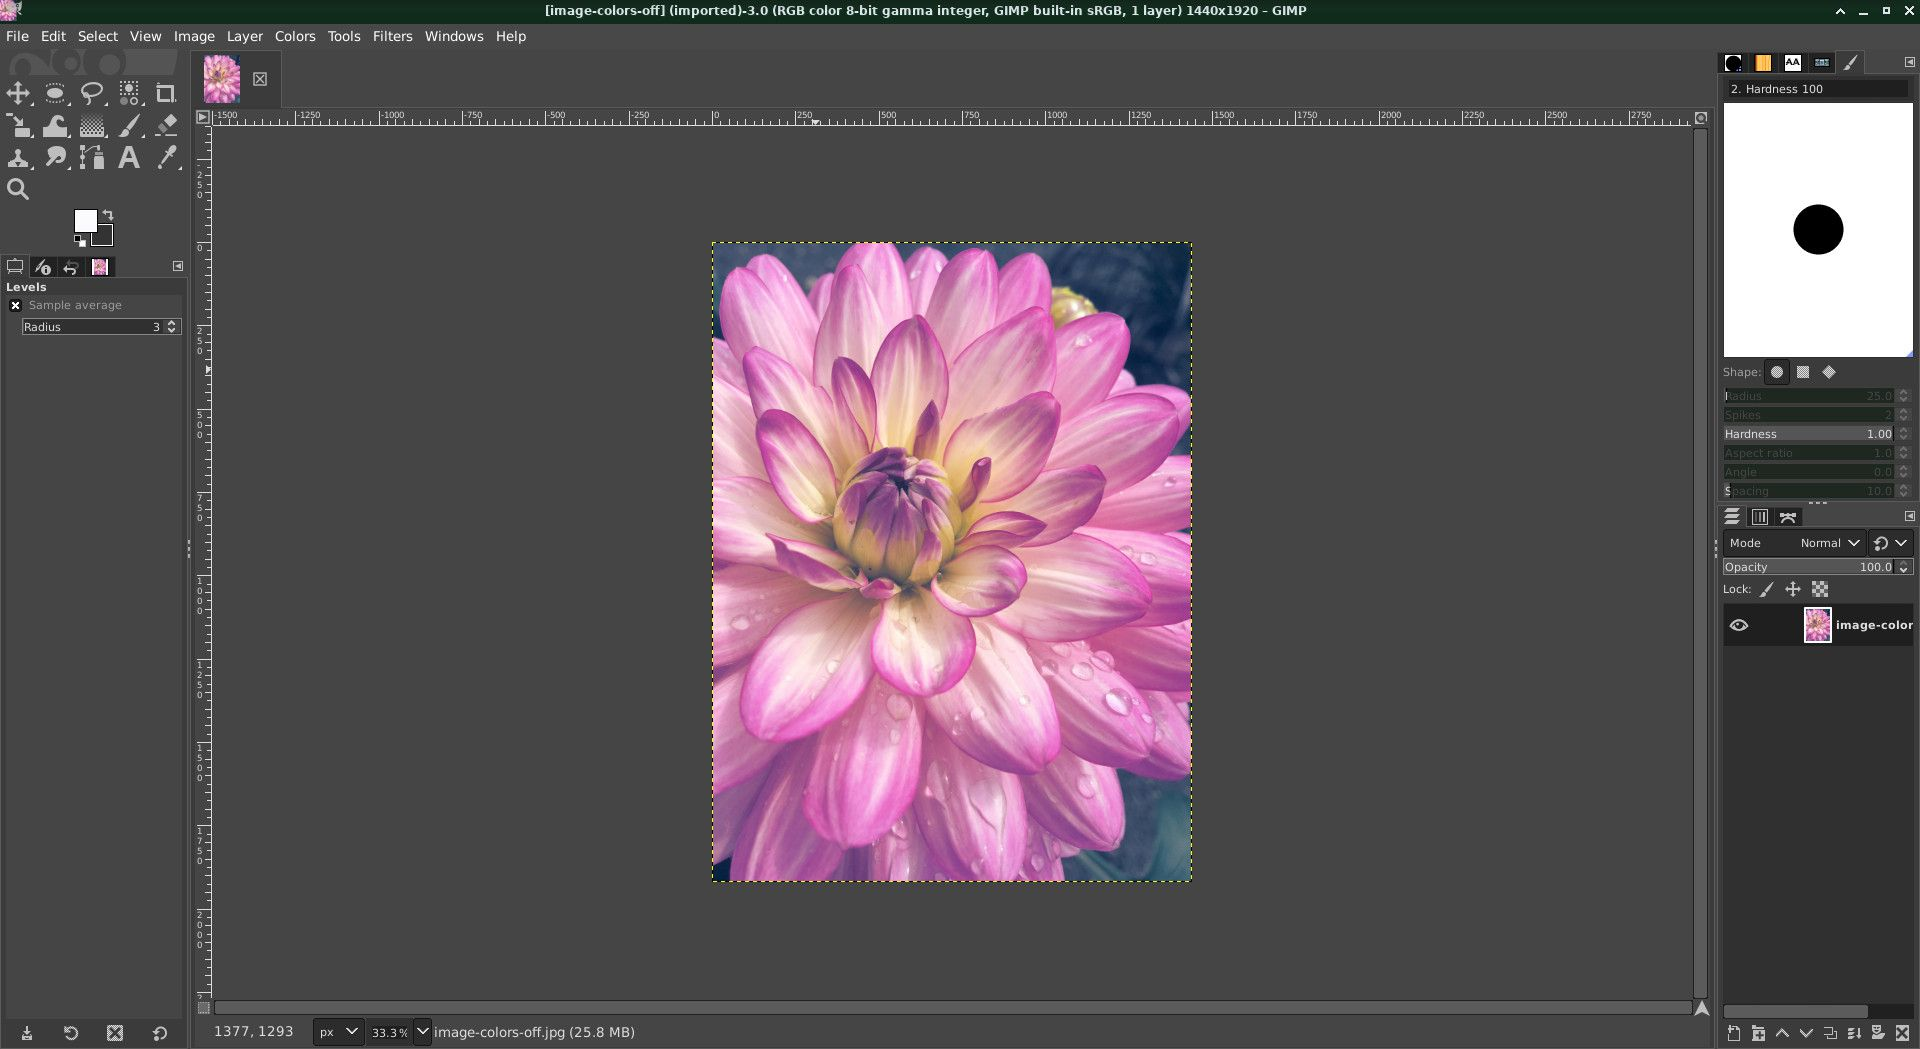 GIMP image with incorrect color